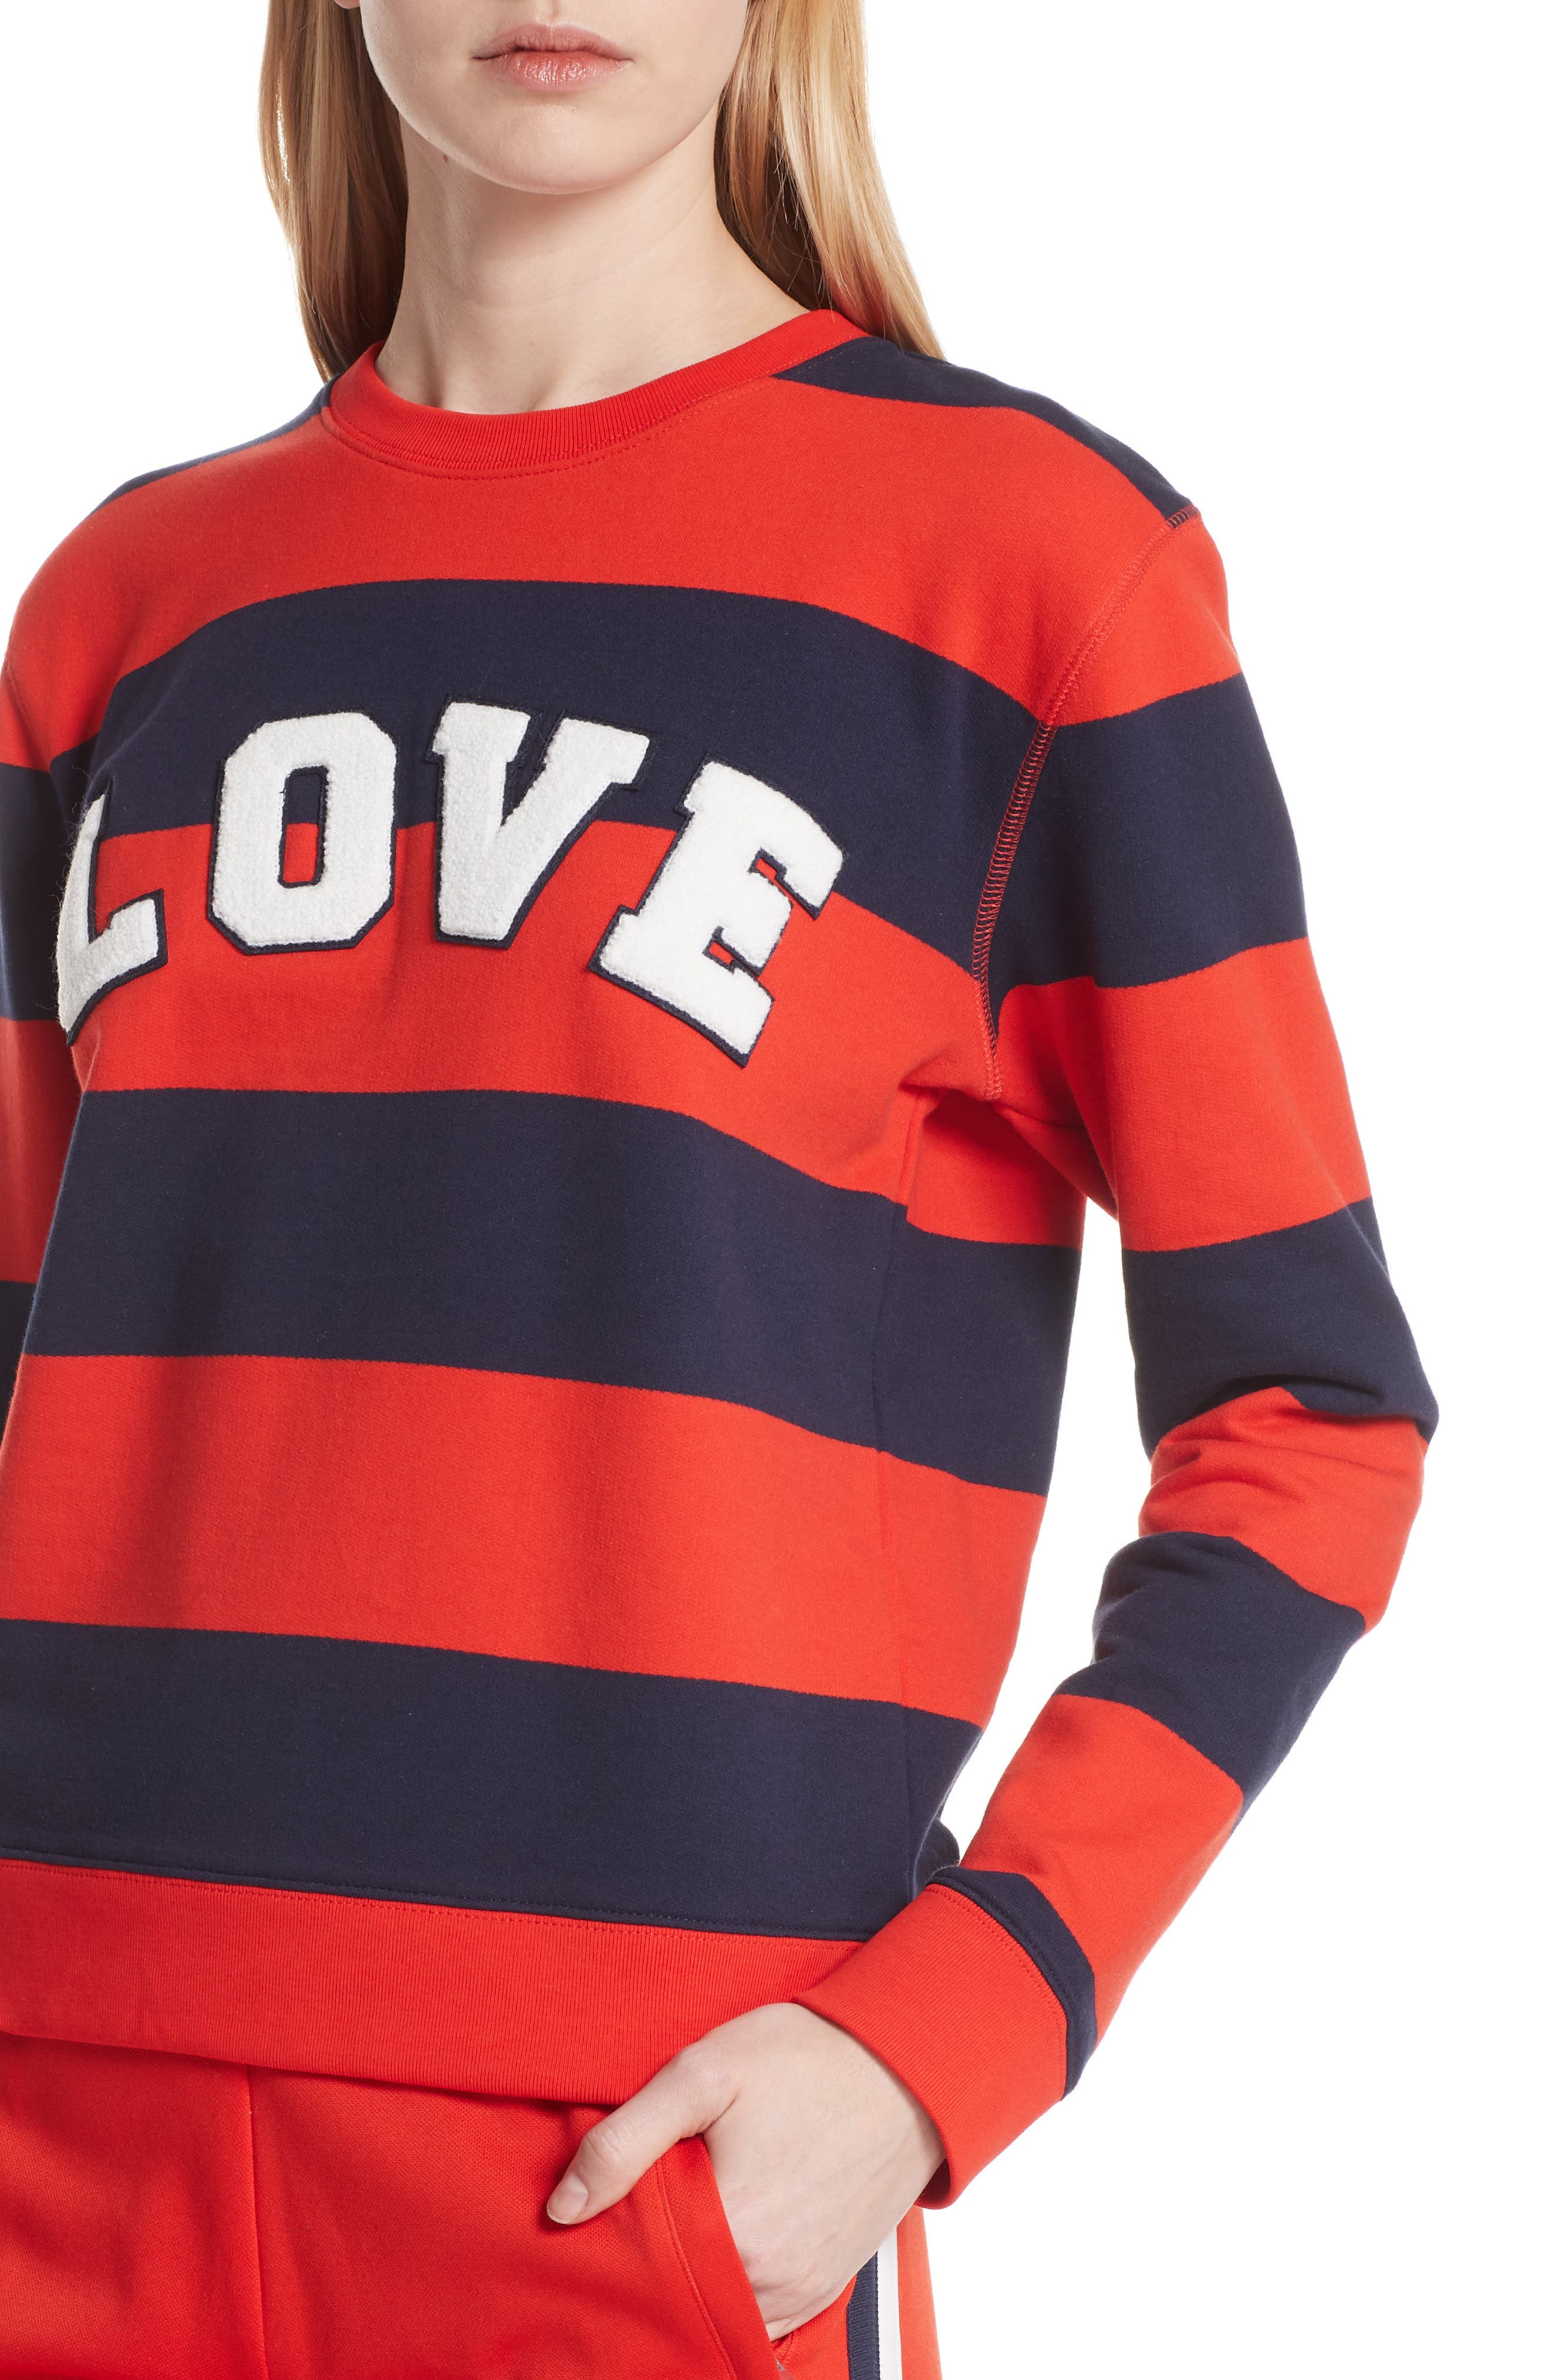 Love Stripe Sweatshirt,                             Alternate thumbnail 4, color,                             RED BROAD STRIPE